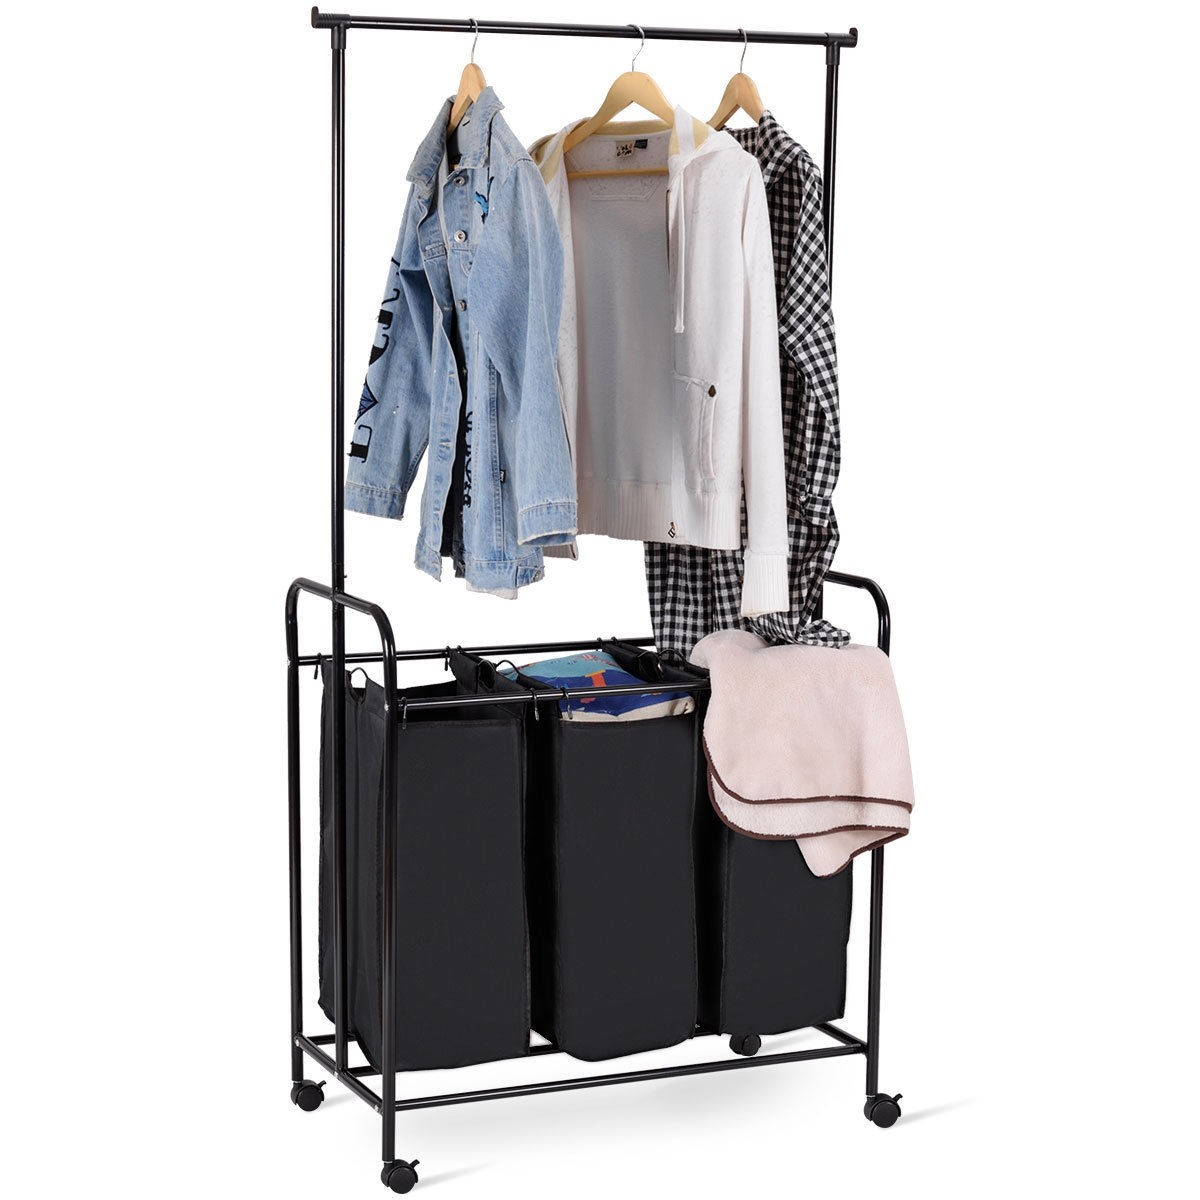 3 Bag Rolling Laundry Sorter Cart Hamper Clothes Organizer Whanging